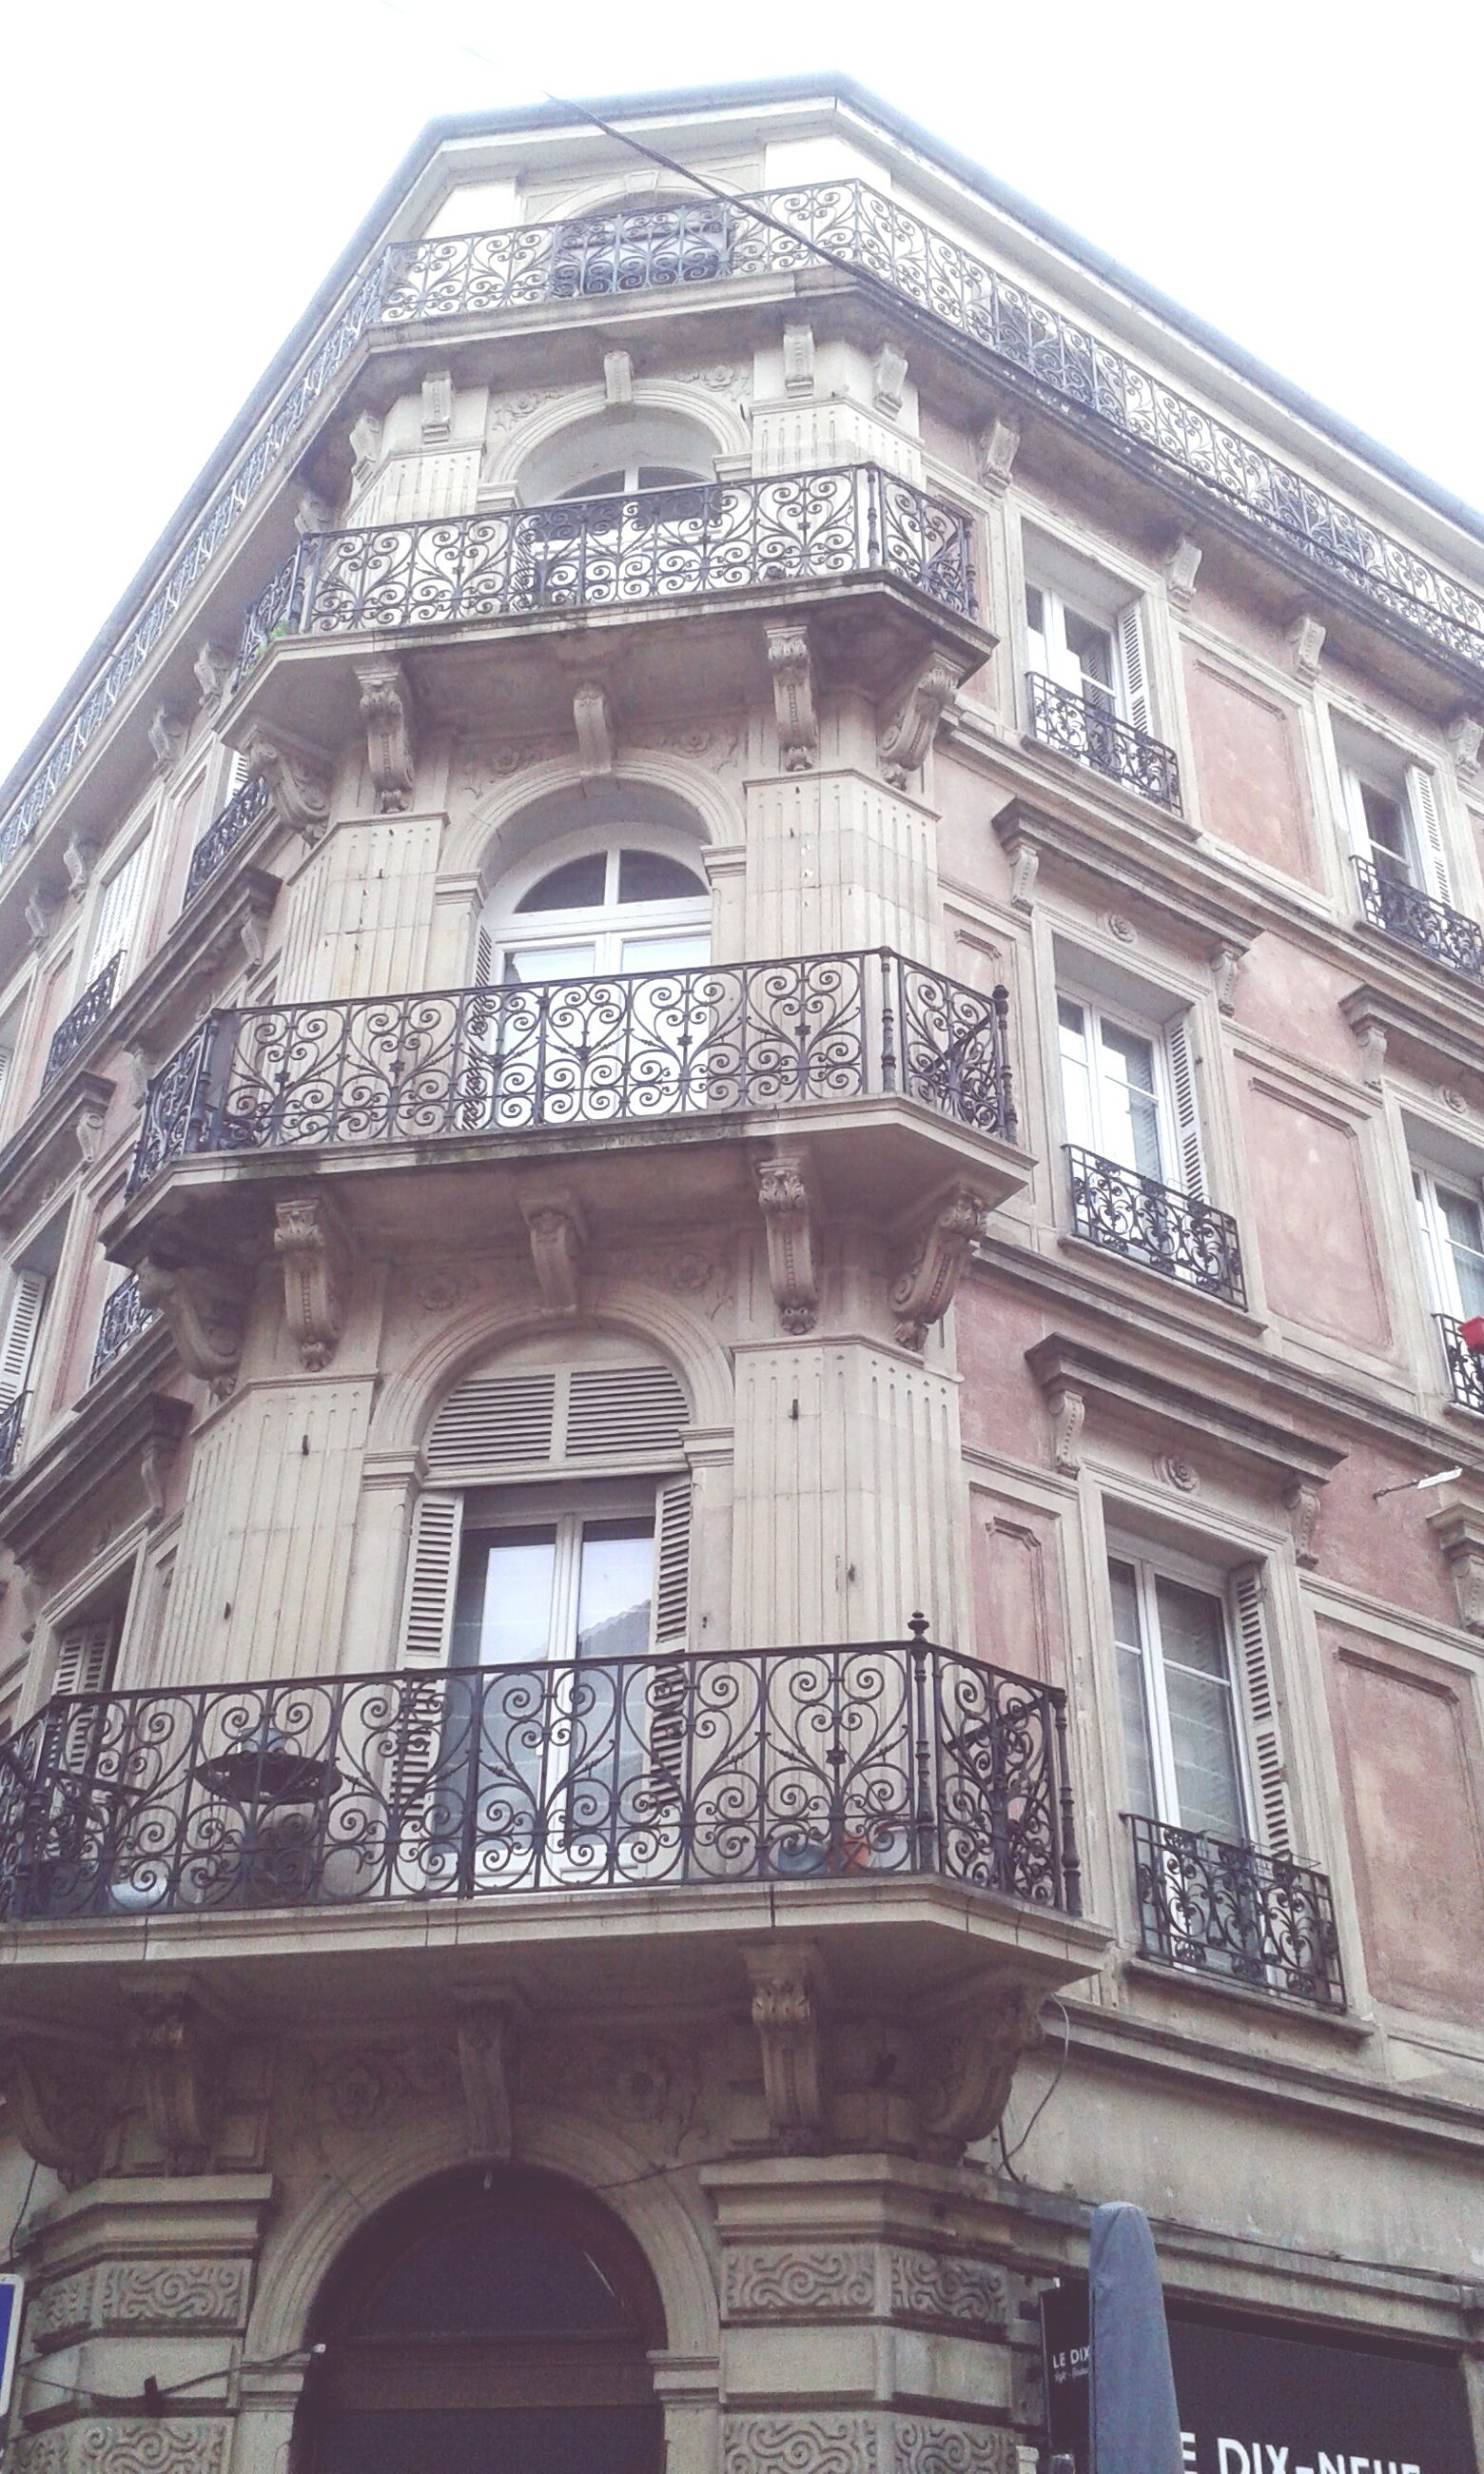 architecture, building exterior, built structure, low angle view, window, arch, building, facade, sky, day, outdoors, no people, city, residential building, clear sky, old, history, residential structure, balcony, architectural feature